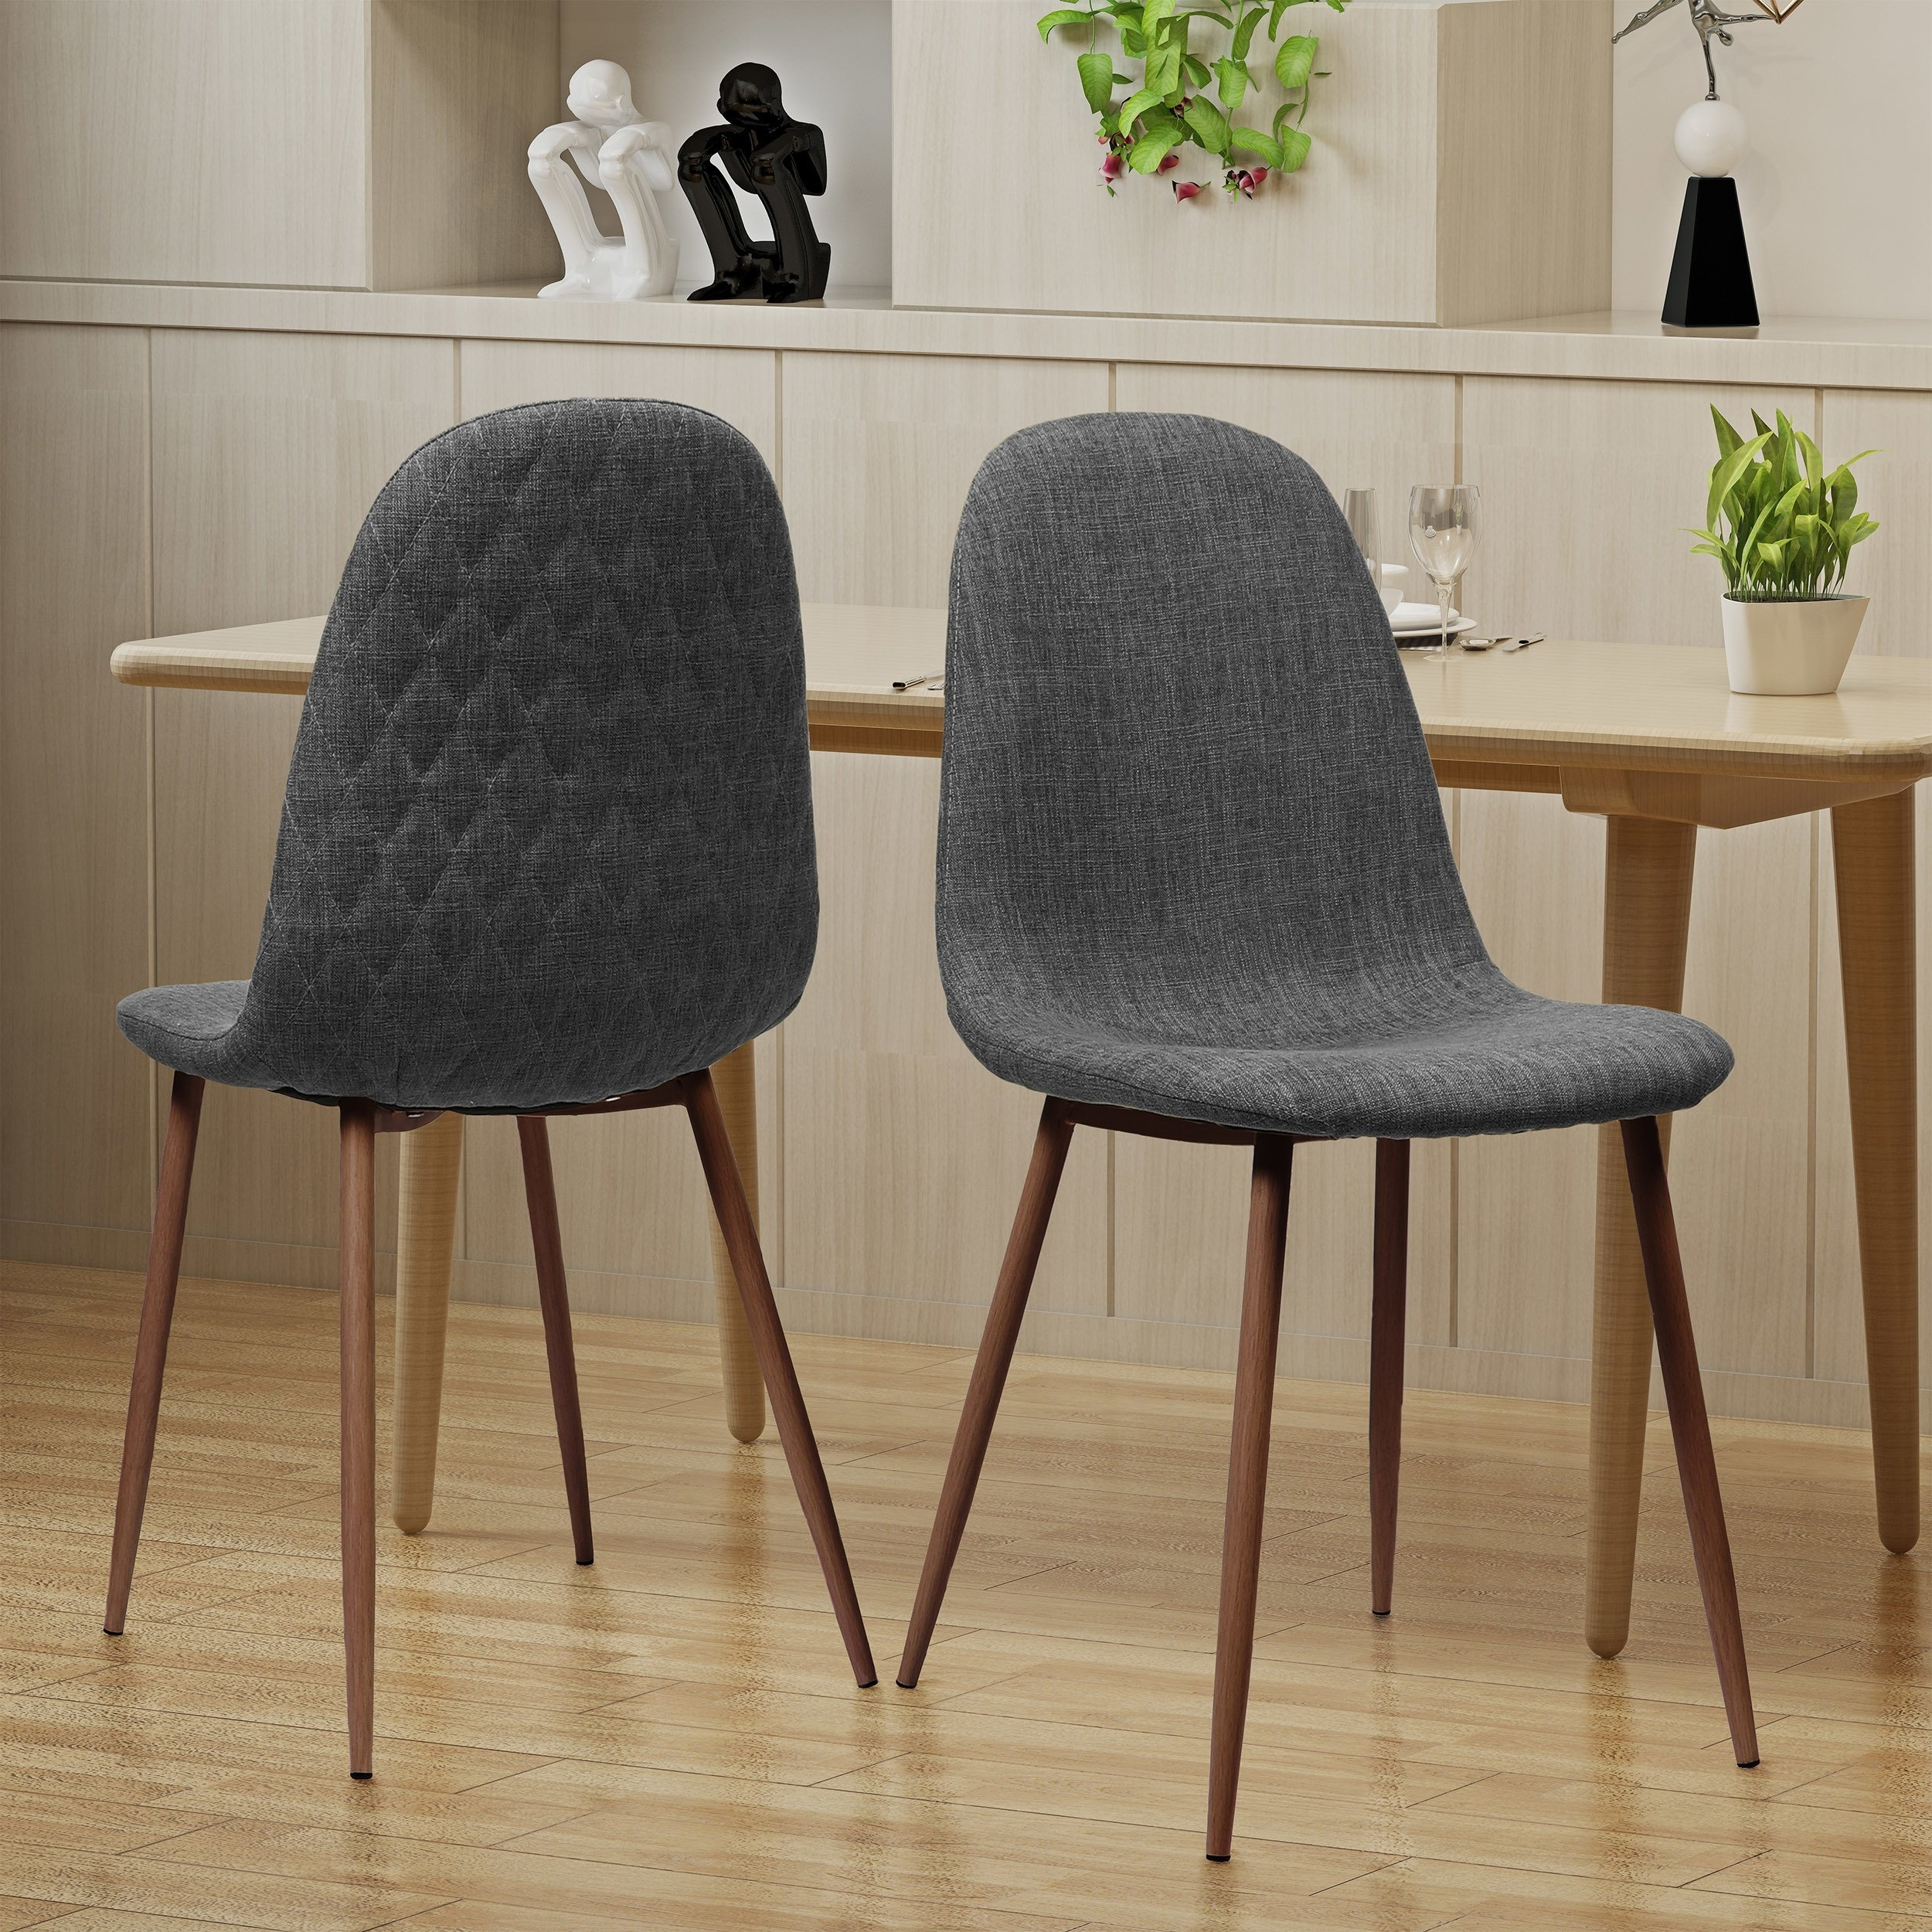 Shop Caden Mid Century Fabric Dining Chair (Set Of 2)Christopher Inside 2017 Caden 5 Piece Round Dining Sets With Upholstered Side Chairs (View 17 of 25)